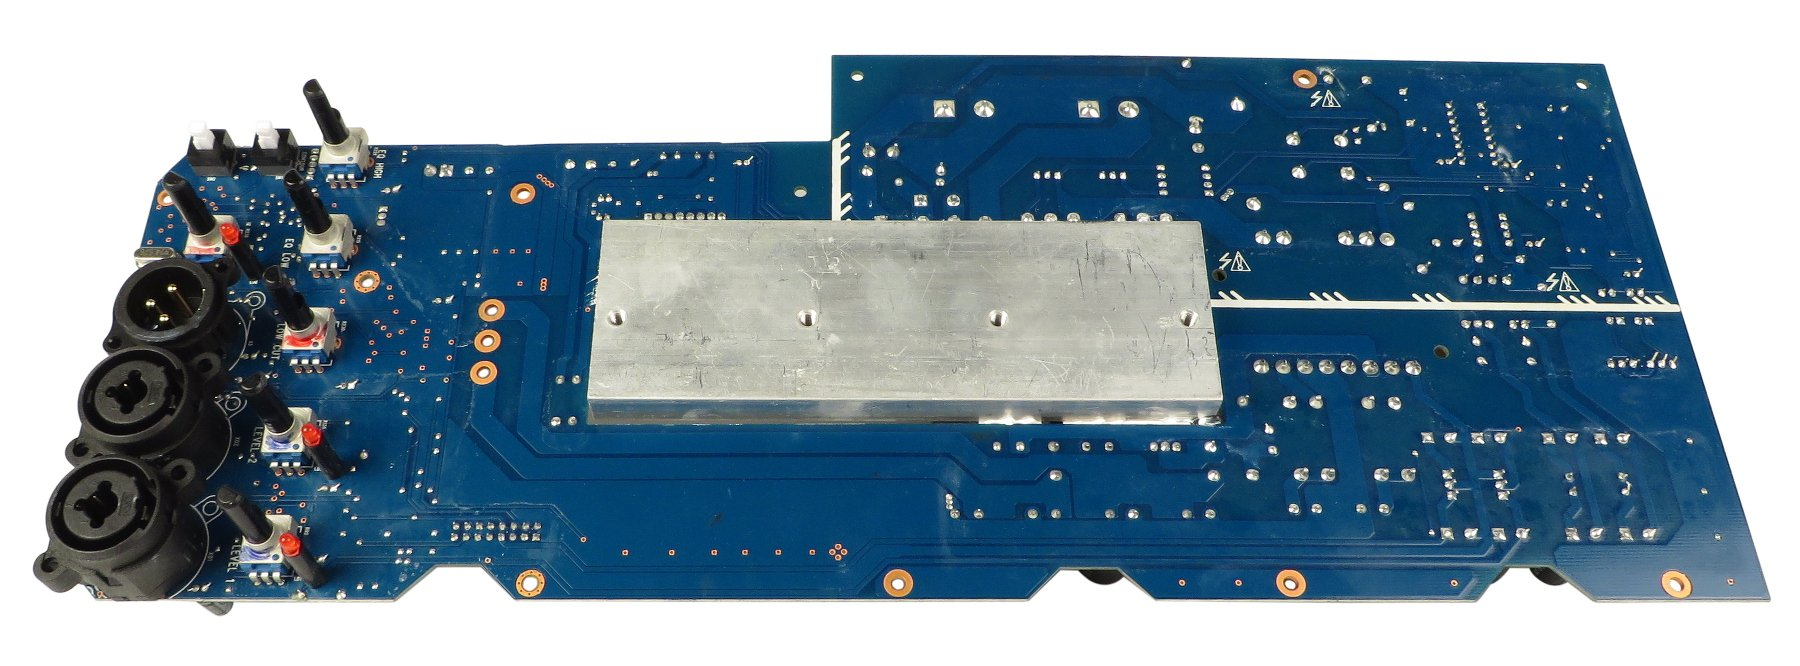 Main Amp PCB for B815 NEO